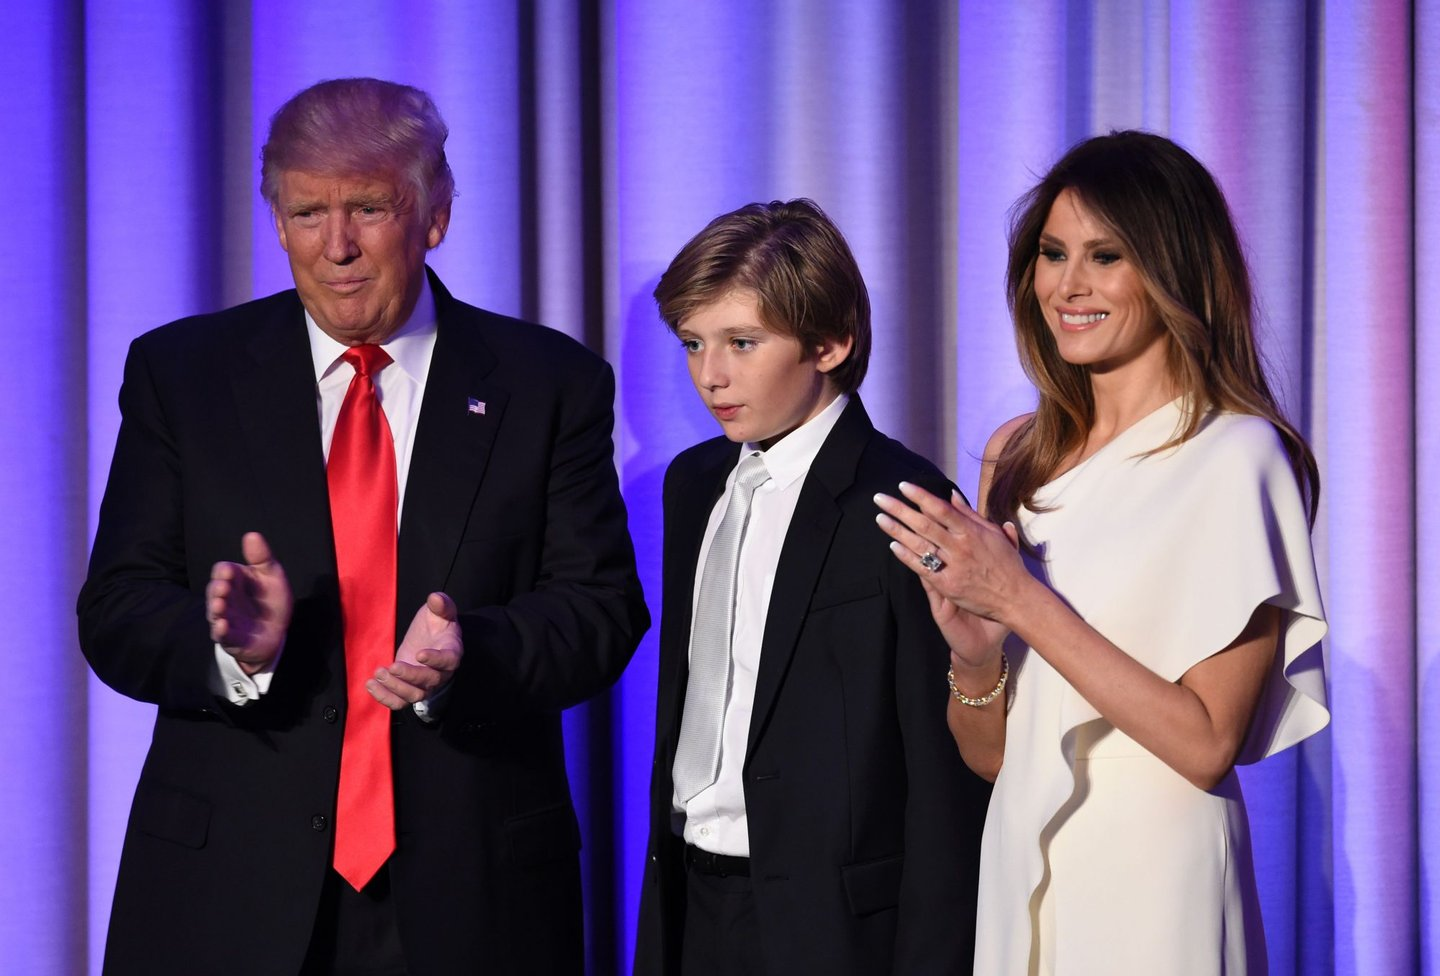 TOPSHOT - US President-elect Donald Trump arrives with his son Baron and wife Melania at the New York Hilton Midtown in New York on November 8, 2016. Trump stunned America and the world Wednesday, riding a wave of populist resentment to defeat Hillary Clinton in the race to become the 45th president of the United States. / AFP / SAUL LOEB (Photo credit should read SAUL LOEB/AFP/Getty Images)